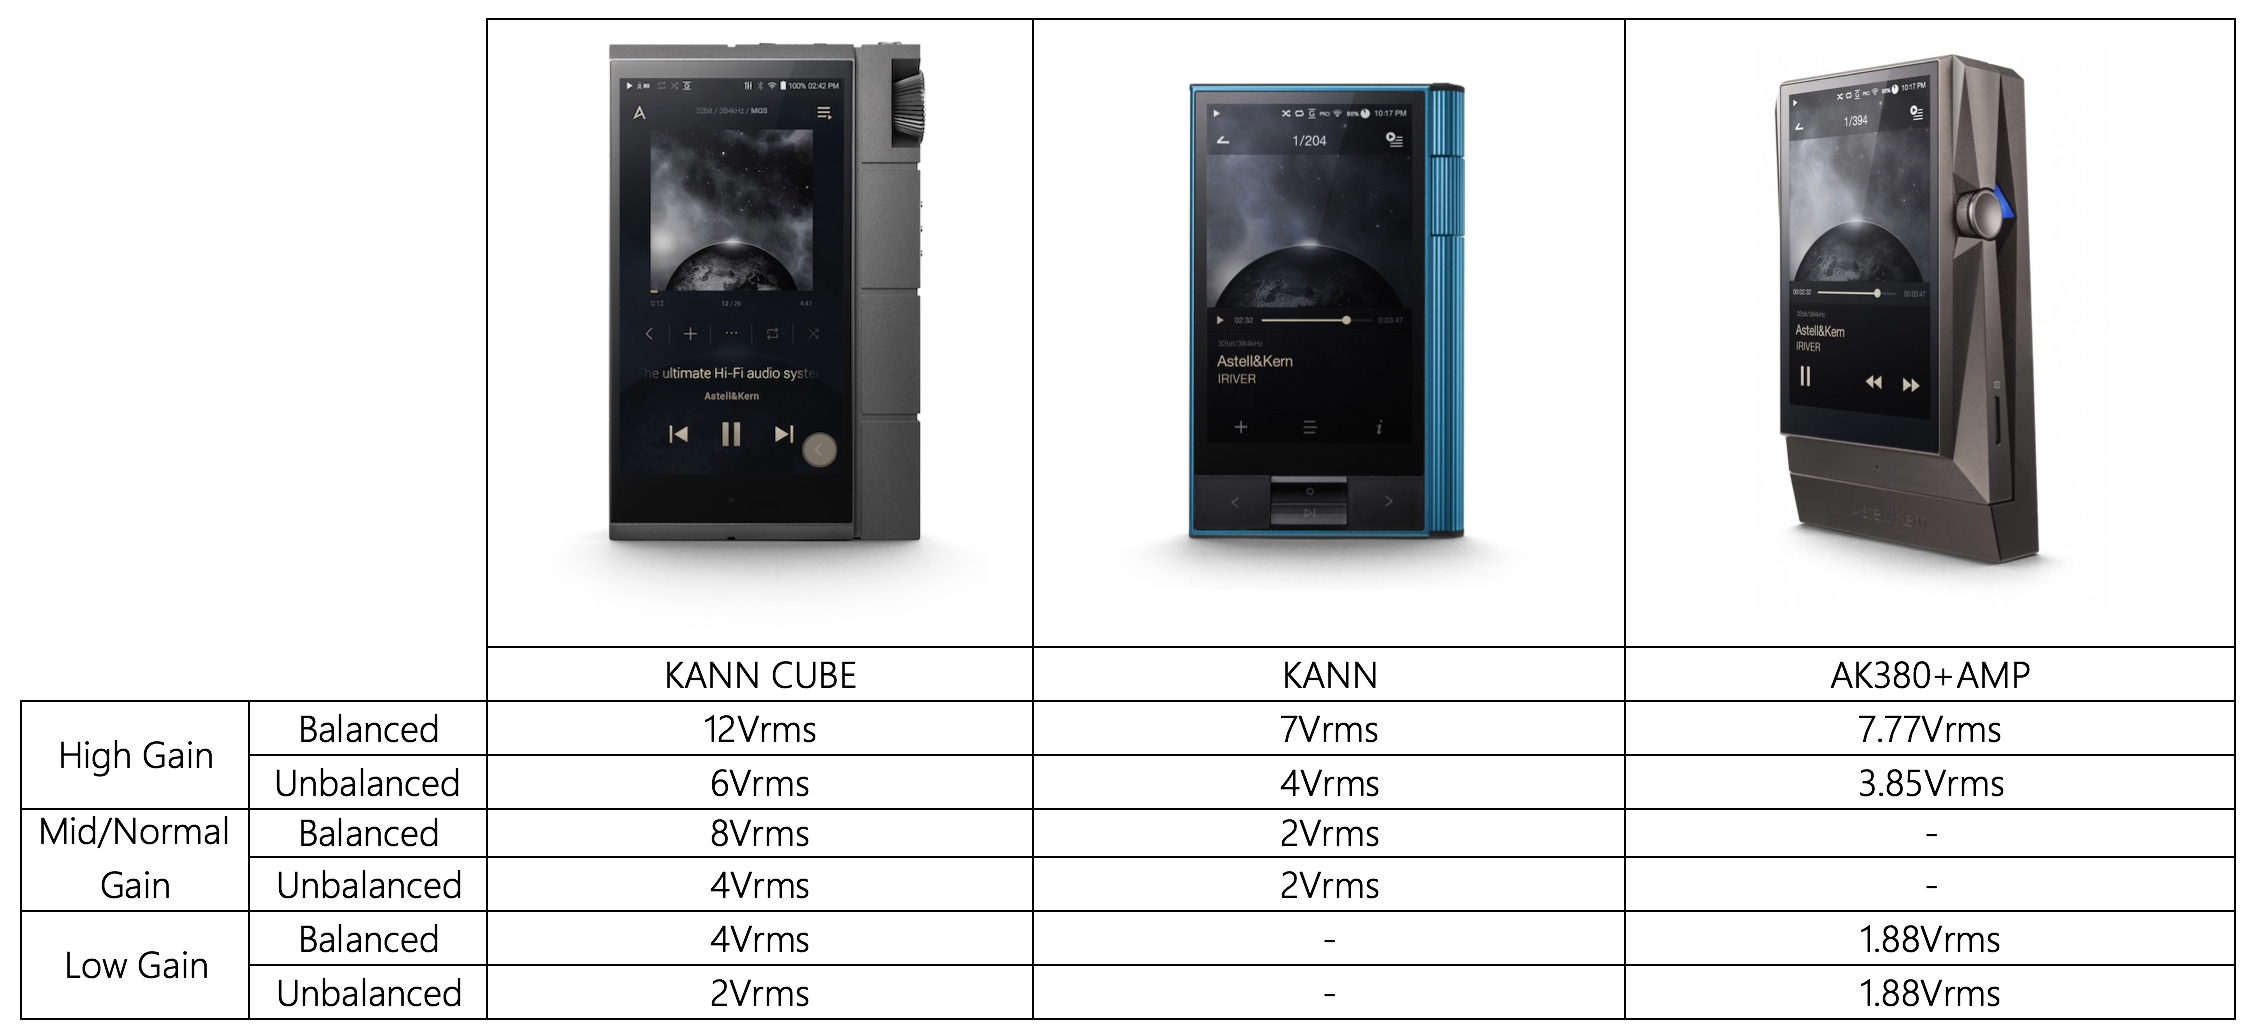 Output comparison of KANN CUBE, KANN, and AK380+Amp